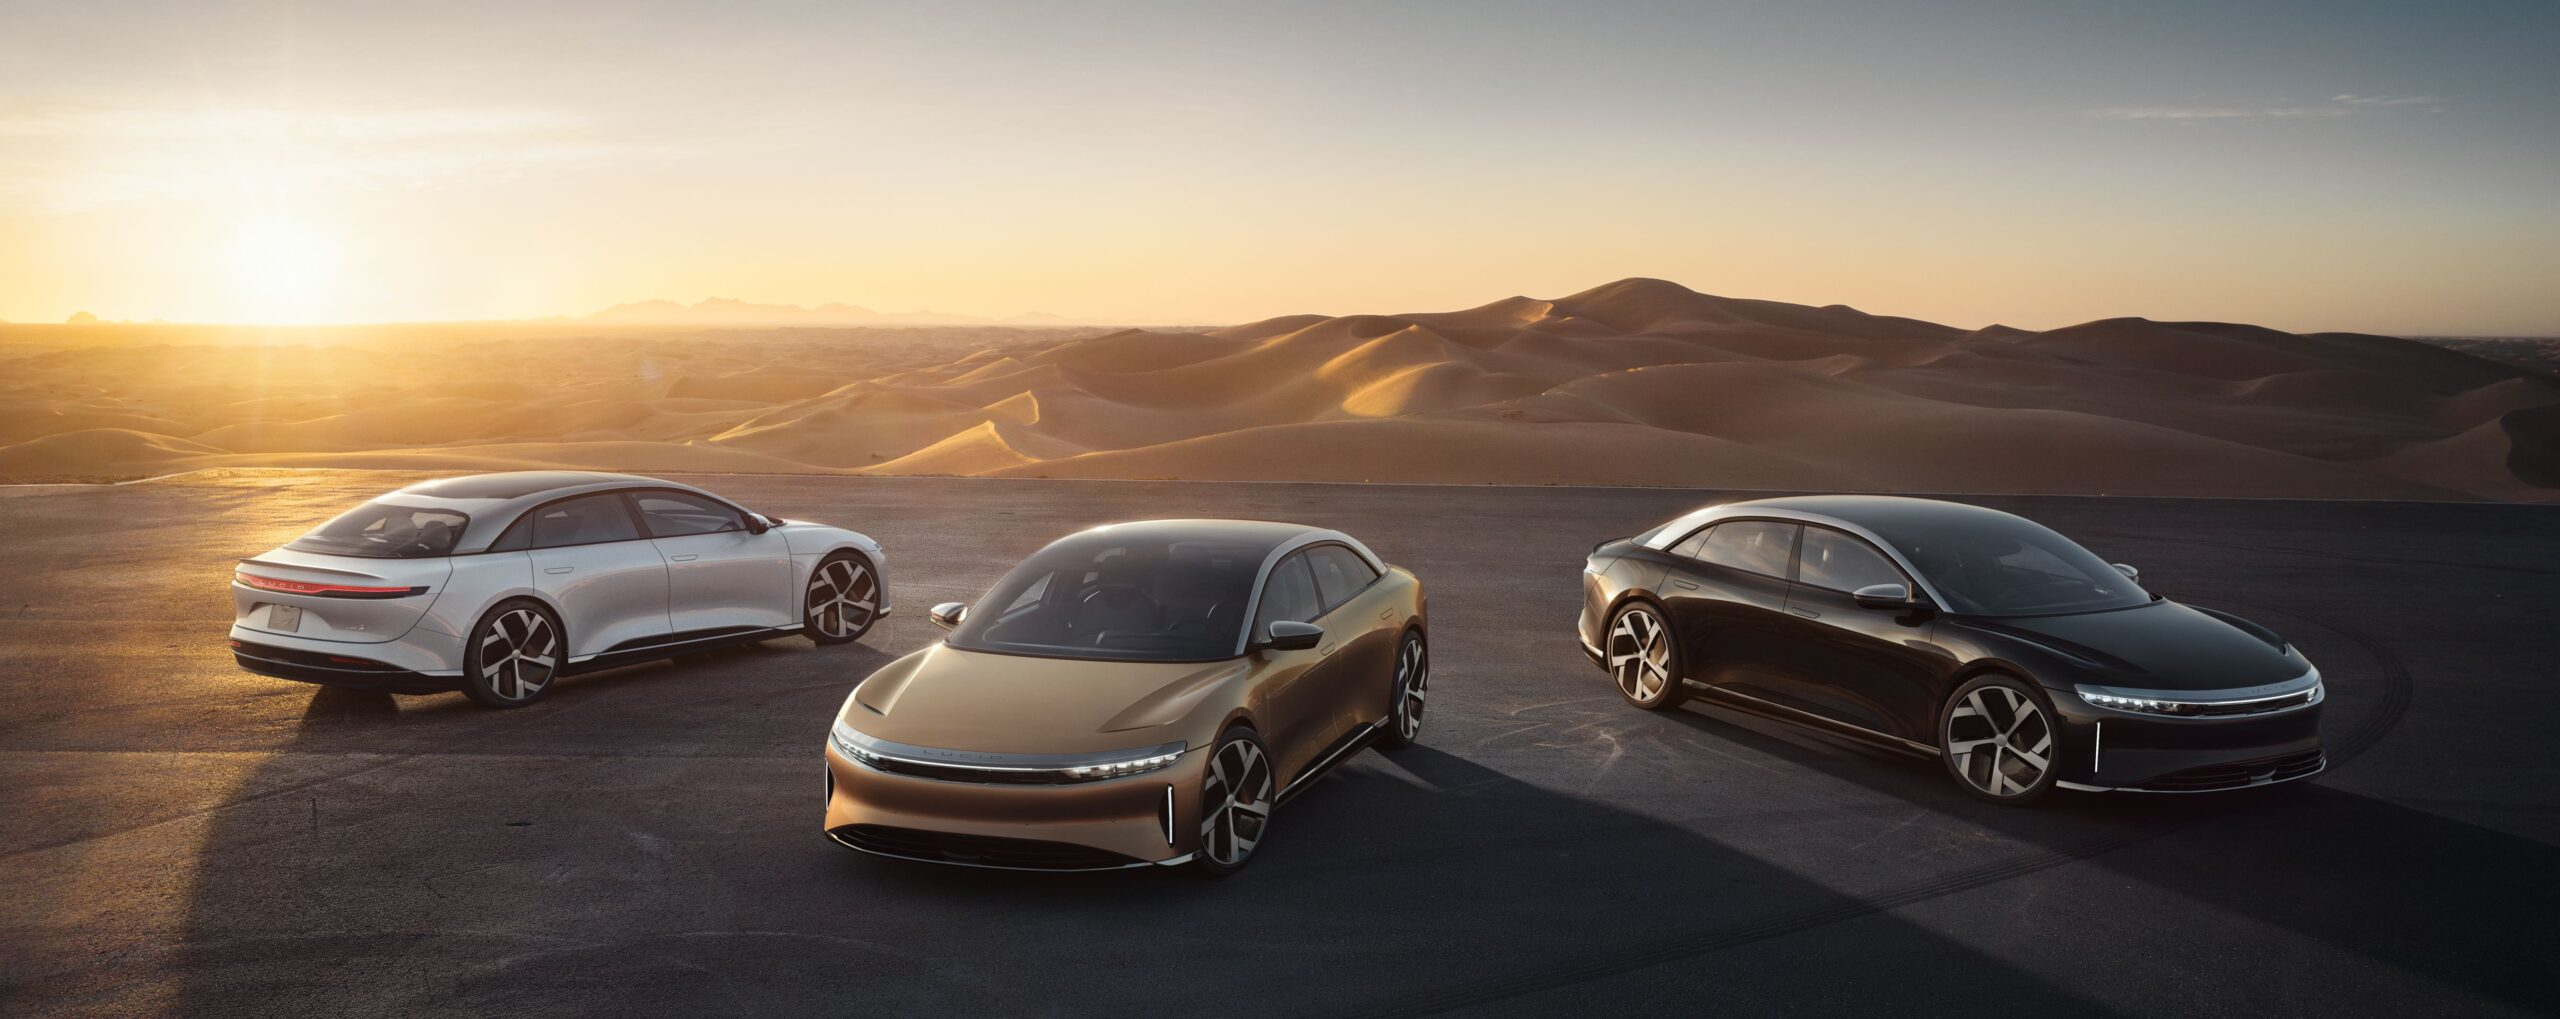 "Lucid Motors: Building A ""No Compromise"" Brand (CleanTechnica)"